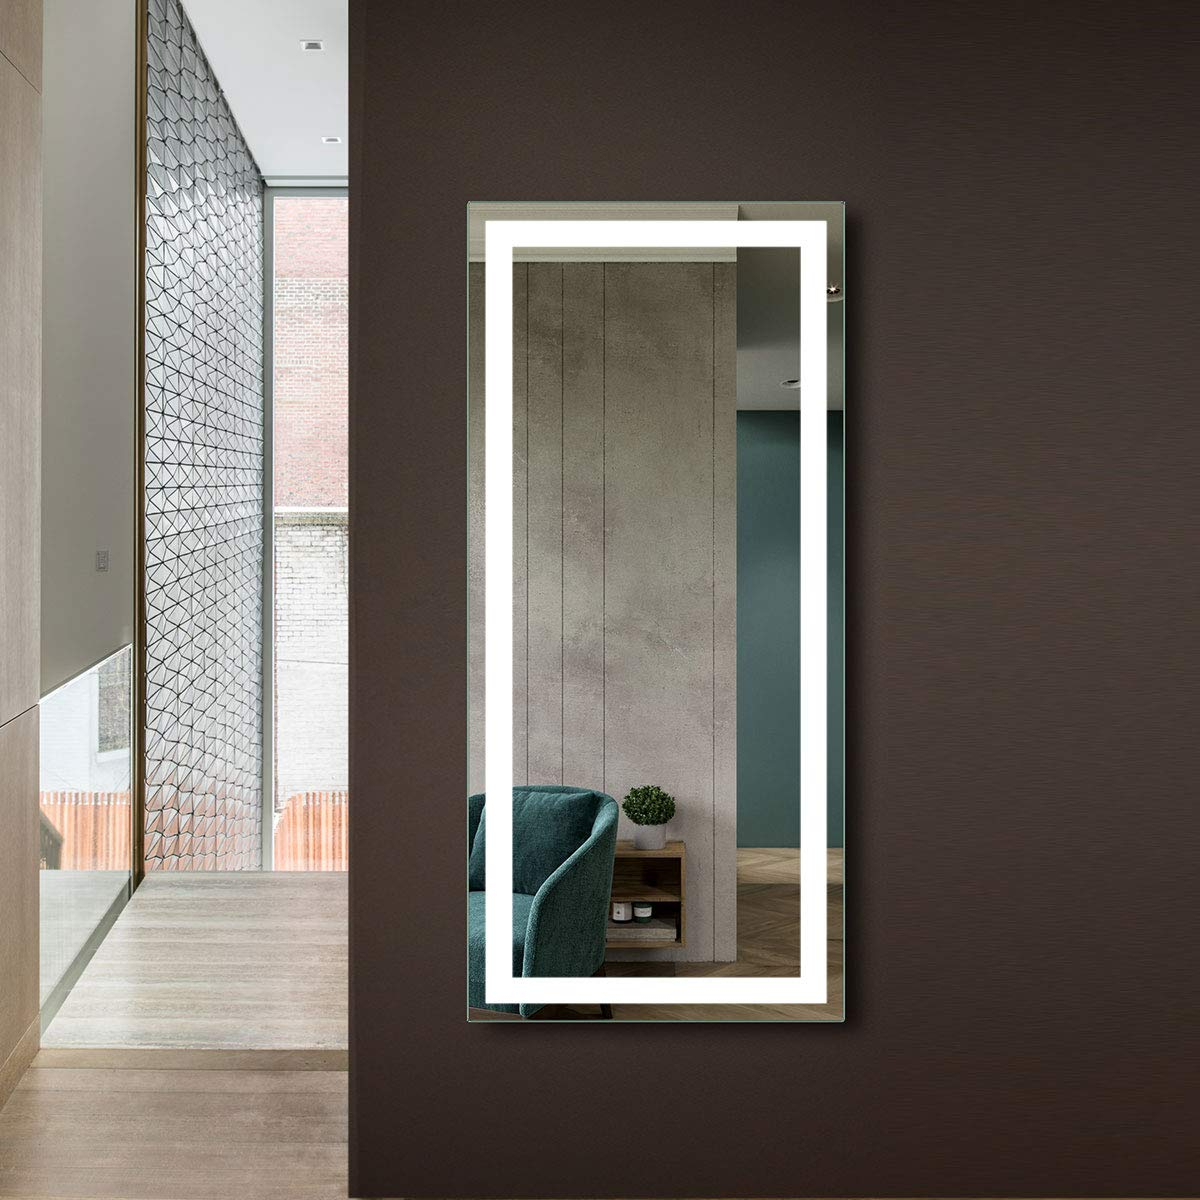 Famous Makeup Wall Mirrors With Dp Home Makeup Wall Mounted Mirrors, Led Backlit Frameless Wall Mirror,  Hotelbathroom Vanity Mirror With Infrared Sensor, 60 X 28 In (E Ck010 Cg) (View 6 of 20)